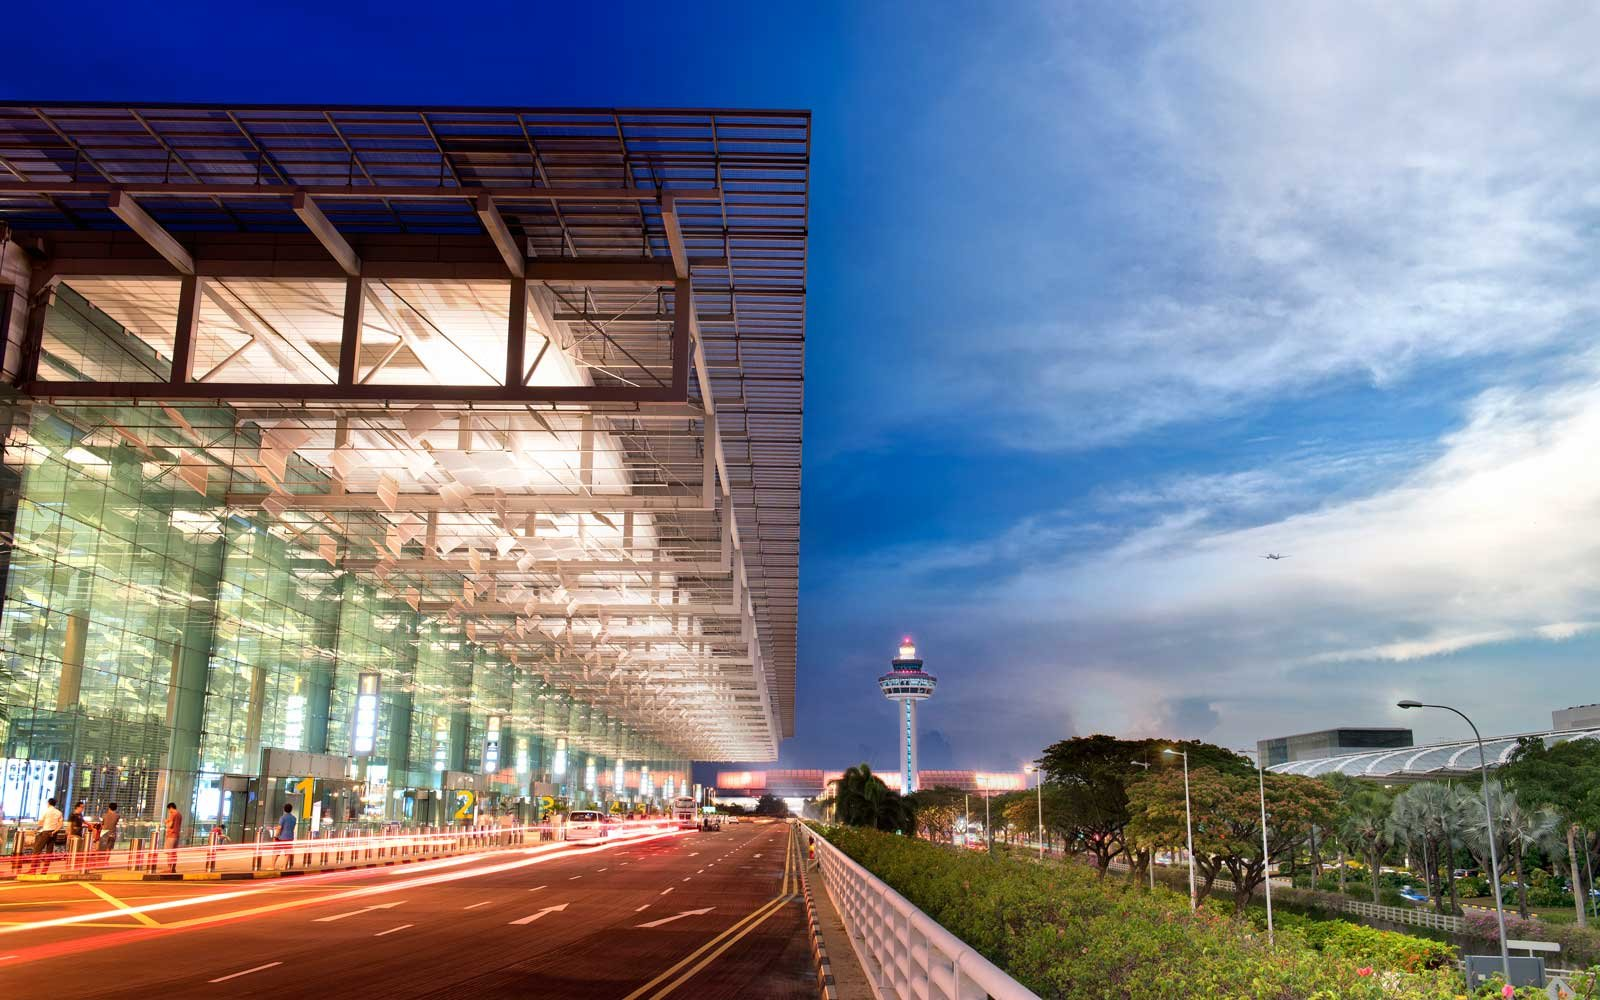 Exterior of Terminal 3, Changi Airport in Singapore